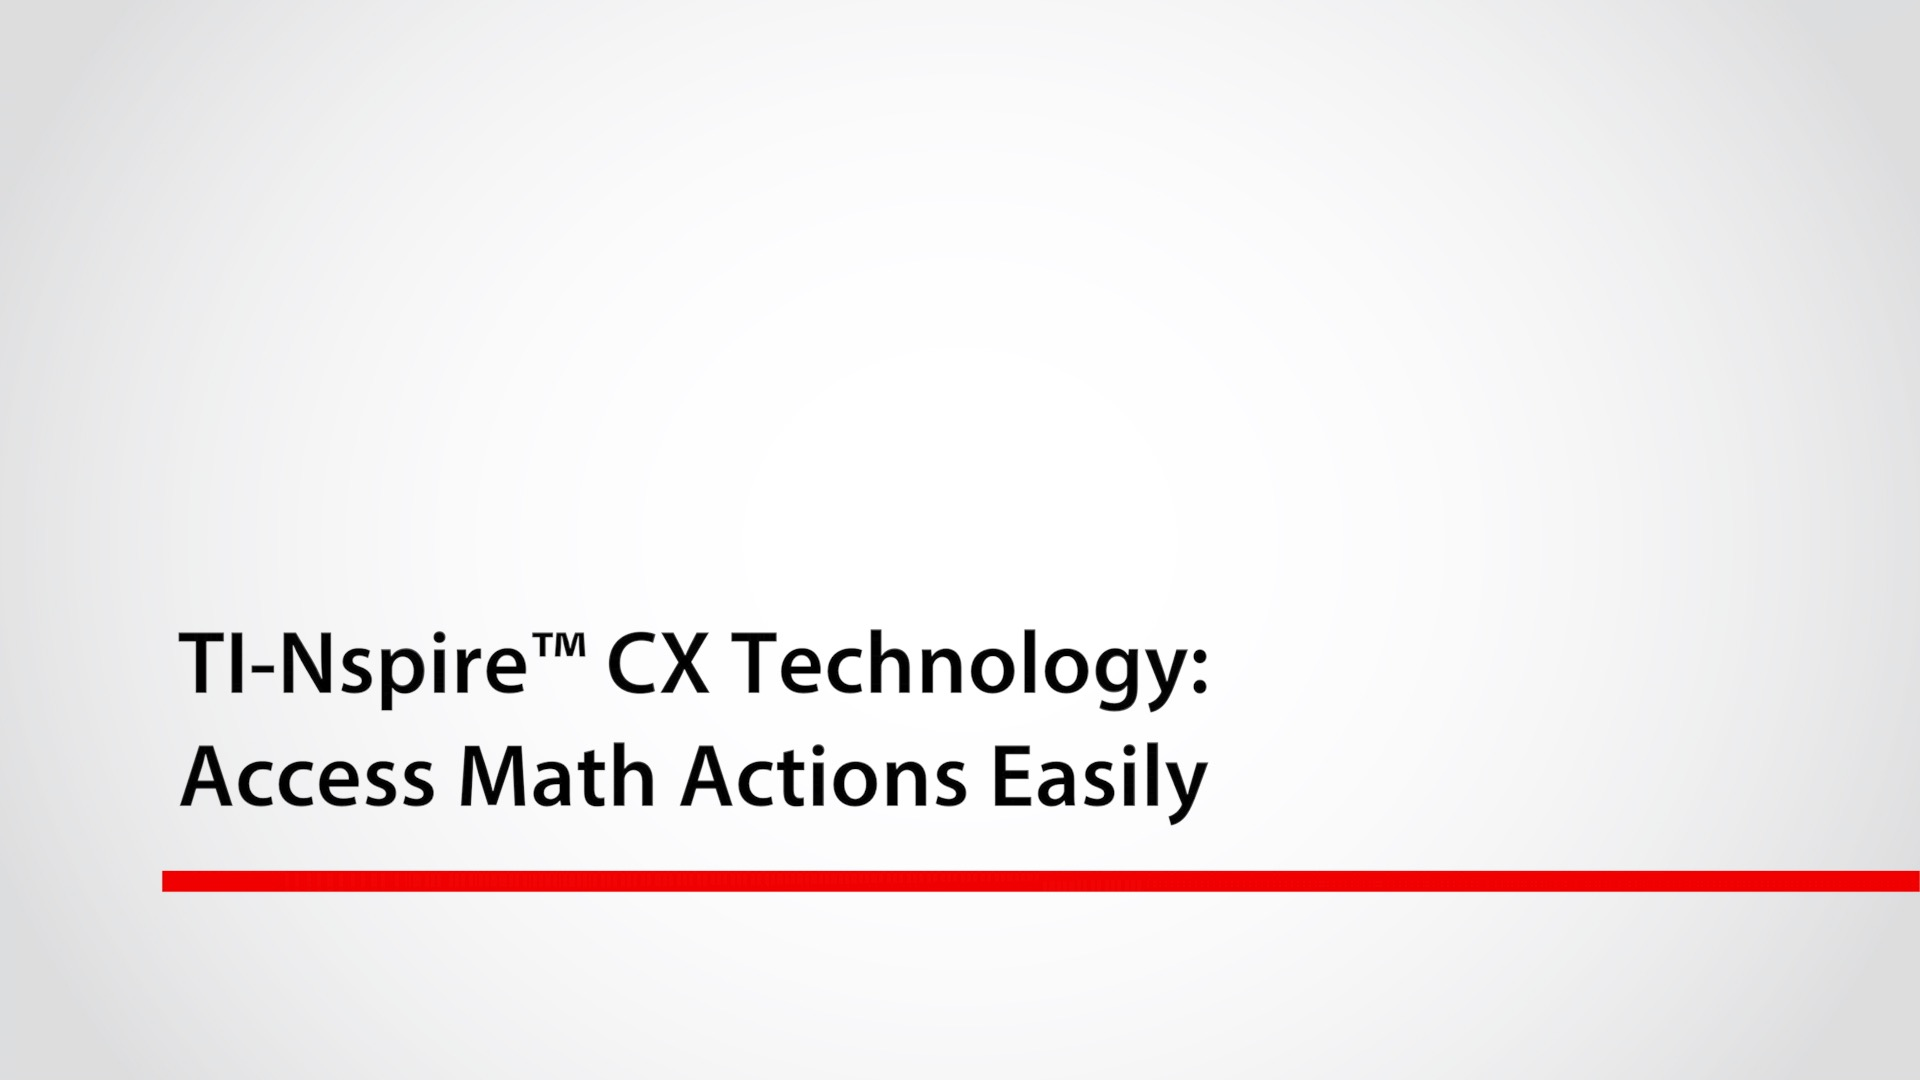 Access Math Actions Easily